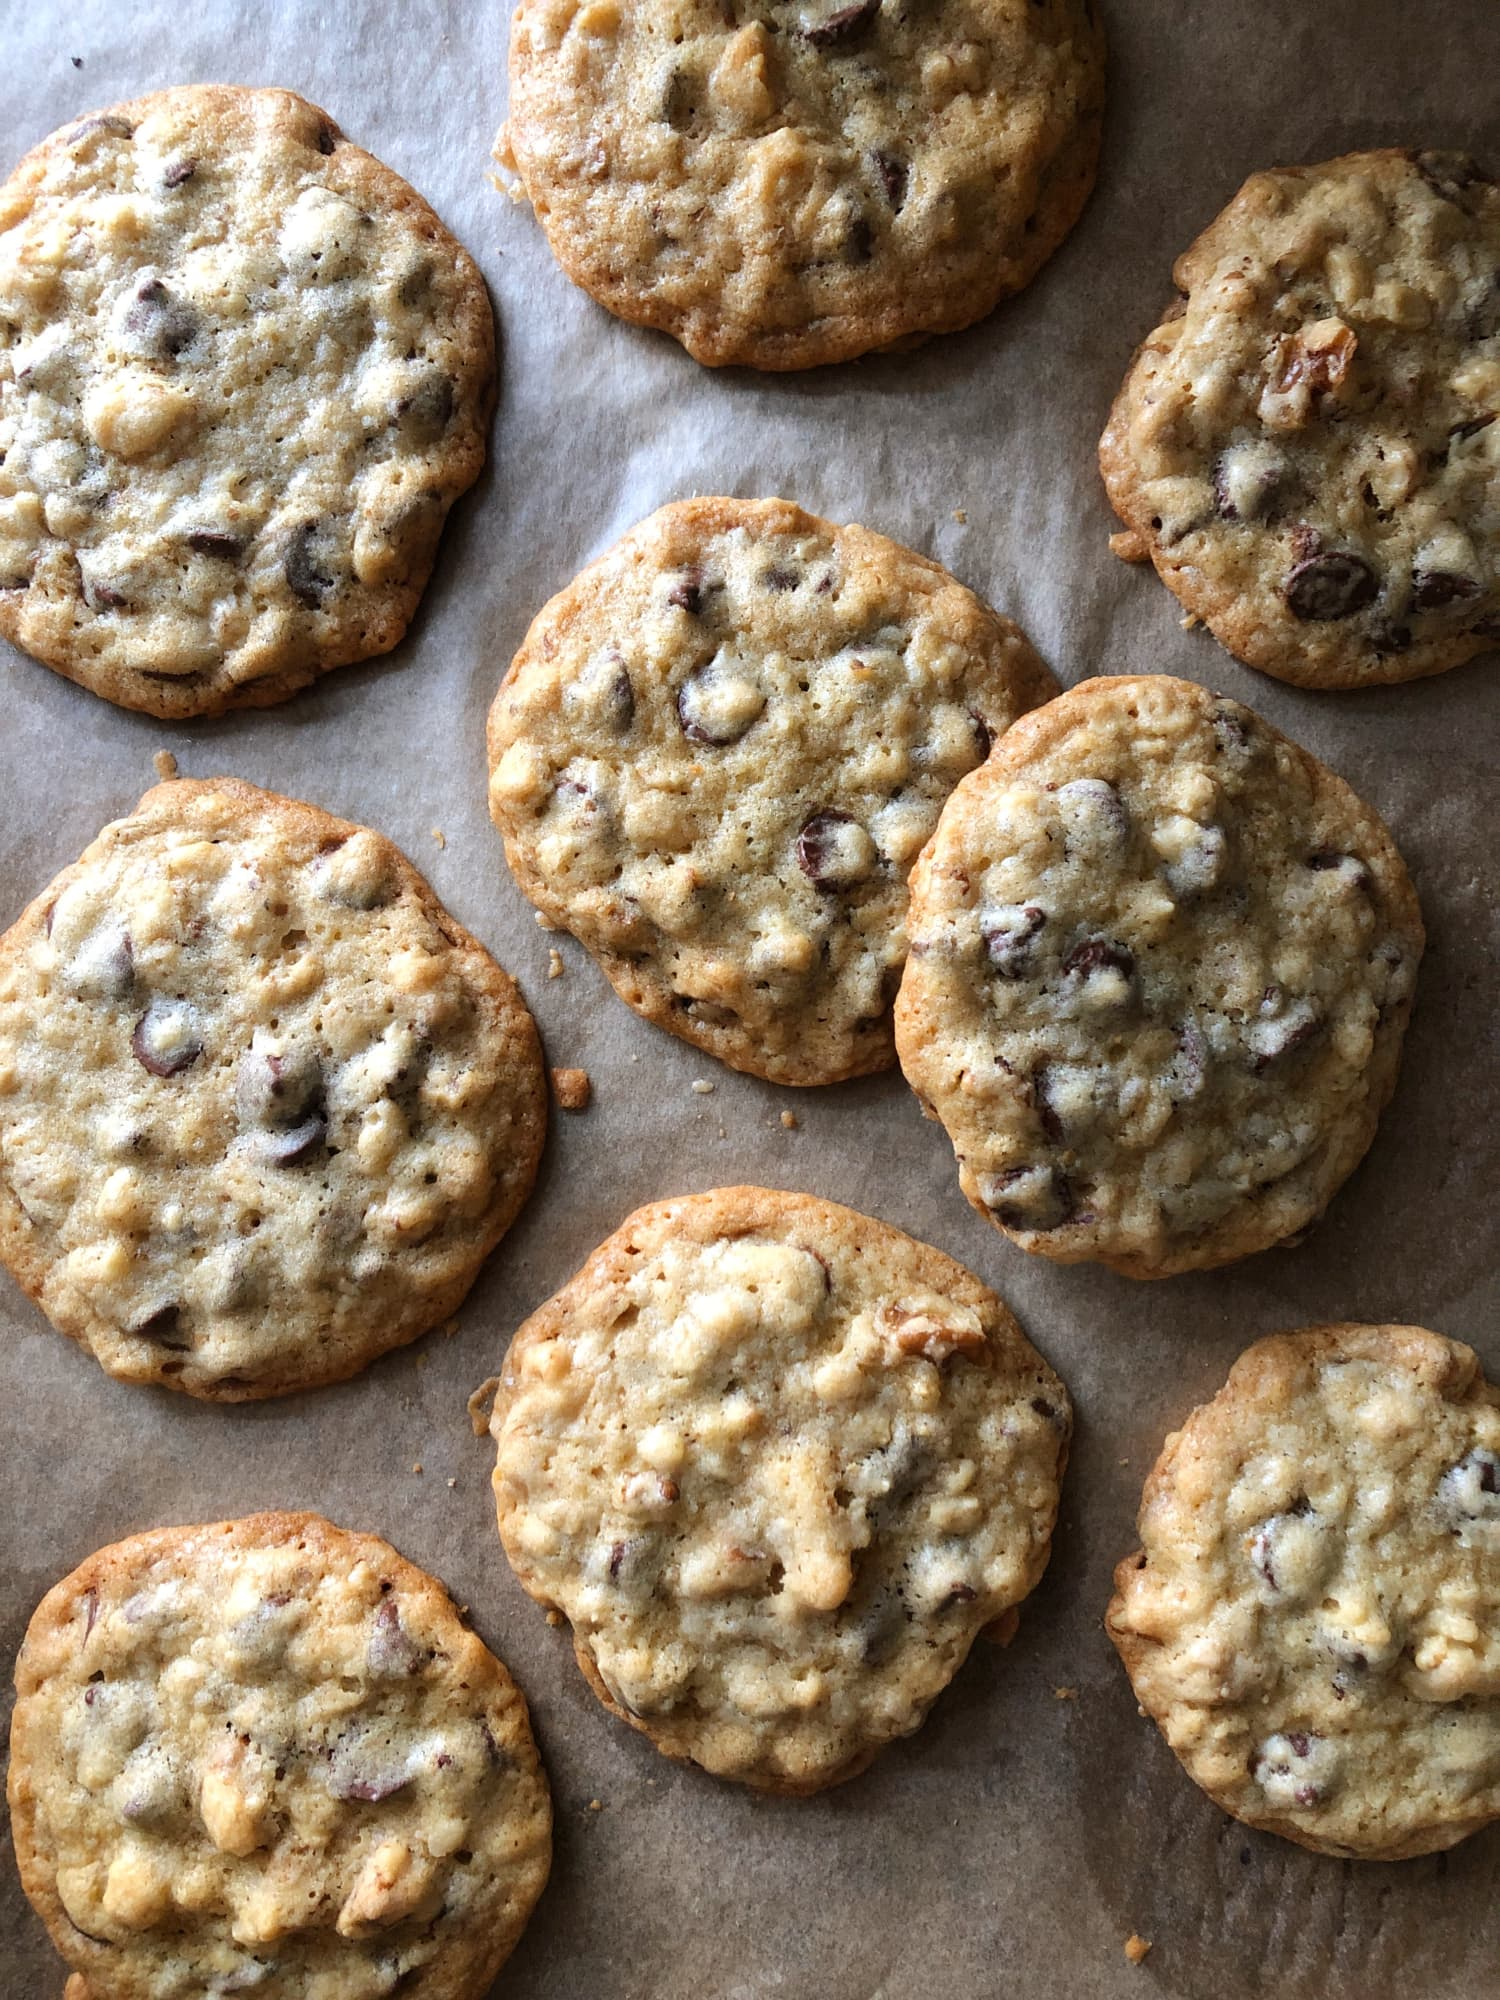 I Tried the DoubleTree Signature Cookie Recipe